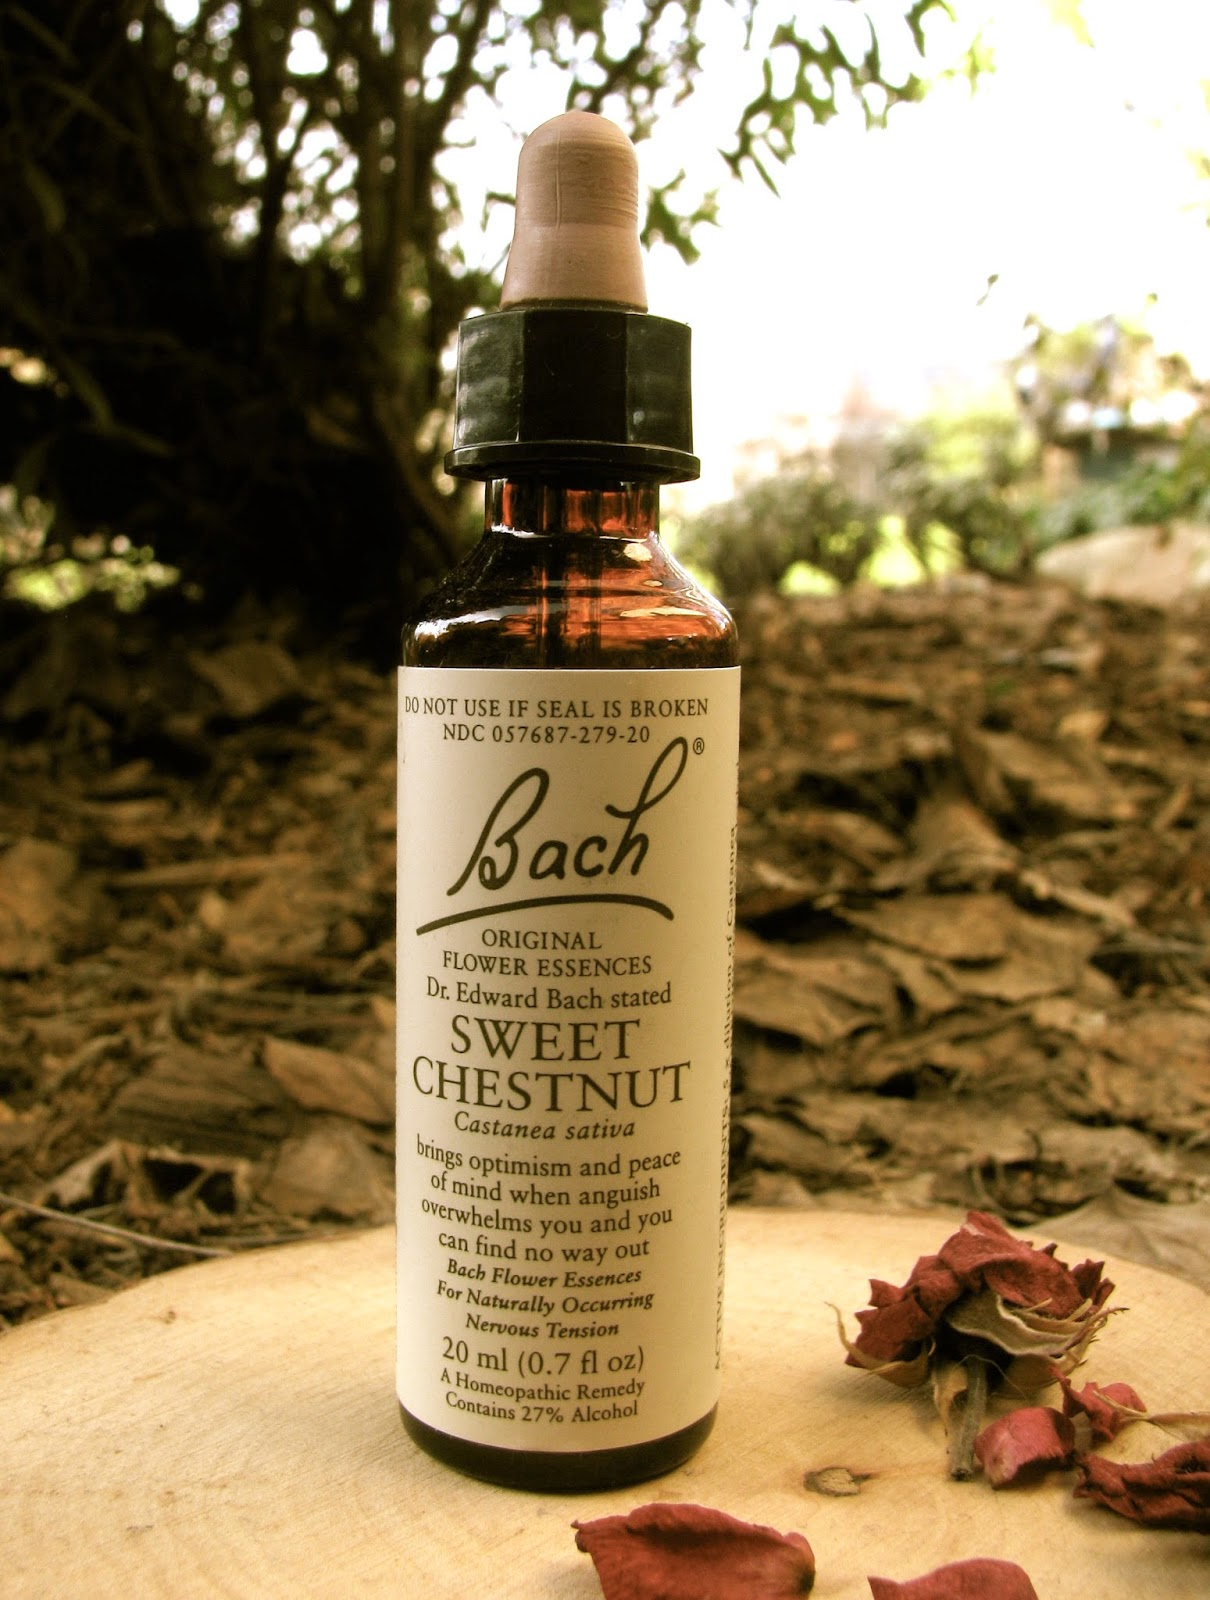 Healthy Gypsy Traveller Bach Flower Remedies For Travel